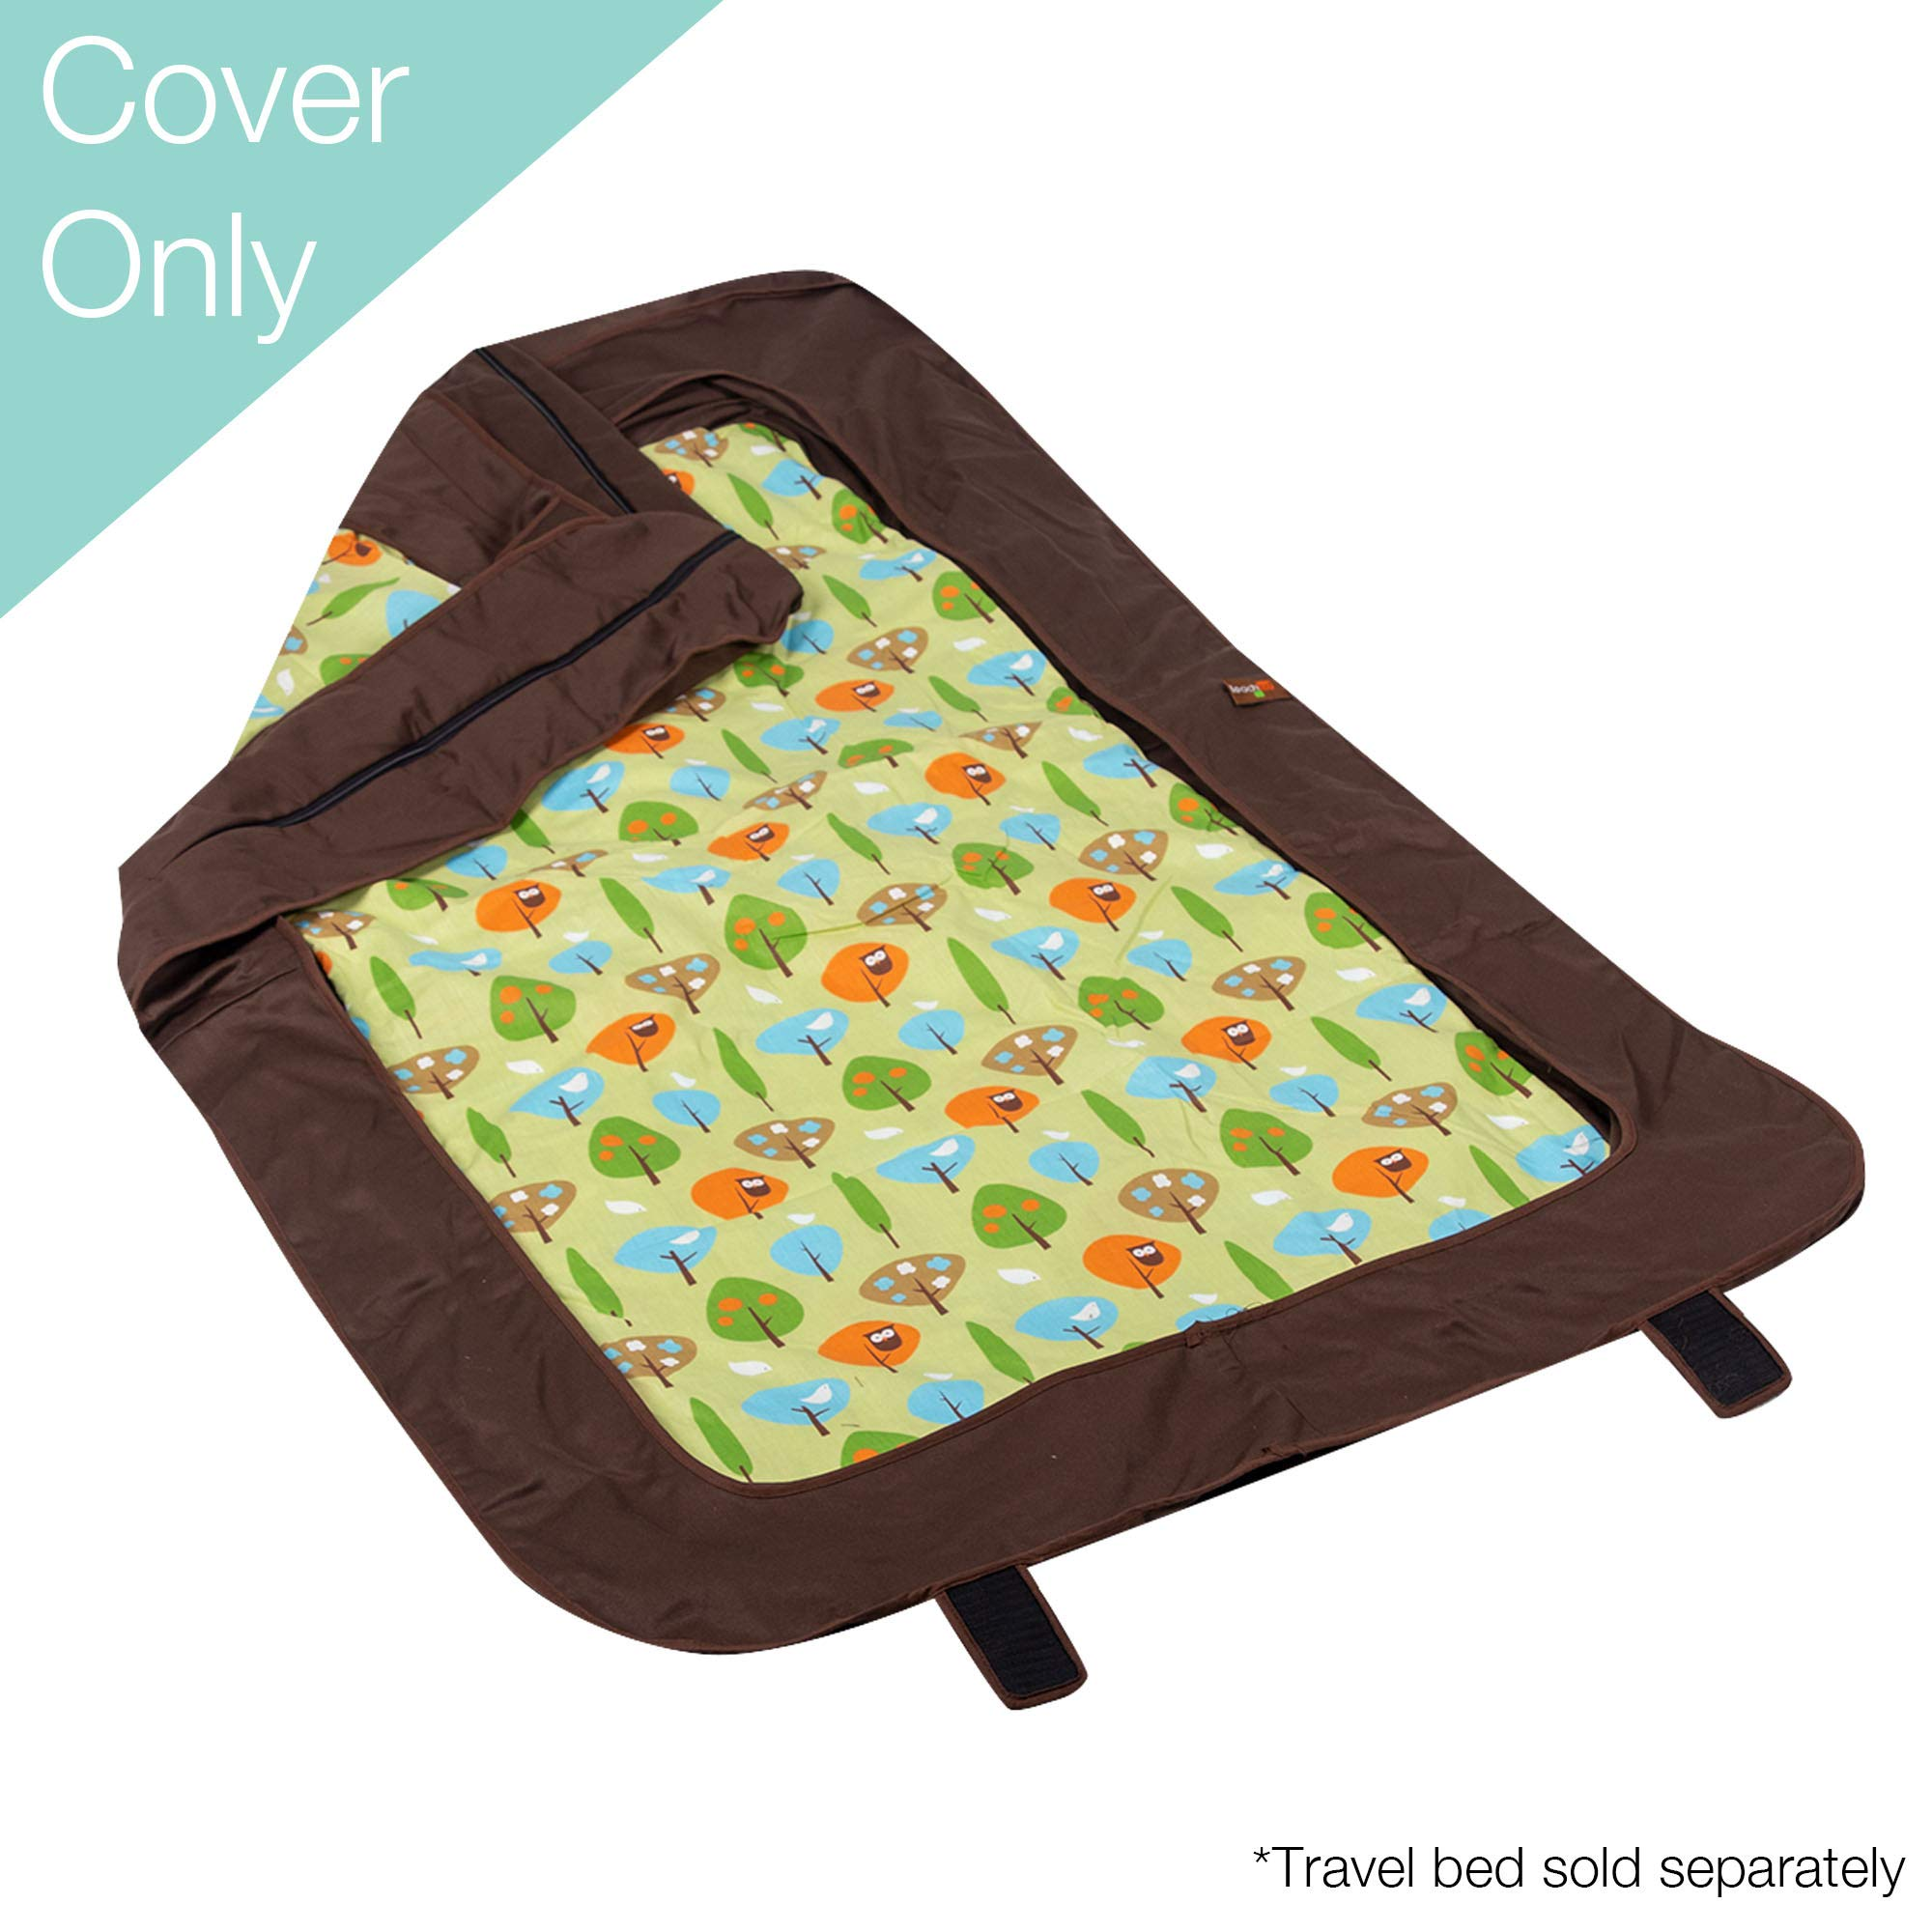 Leachco BumpZZZ Travel Bed Cover (COVER ONLY), Brown/Green Forest Frolics by Leachco